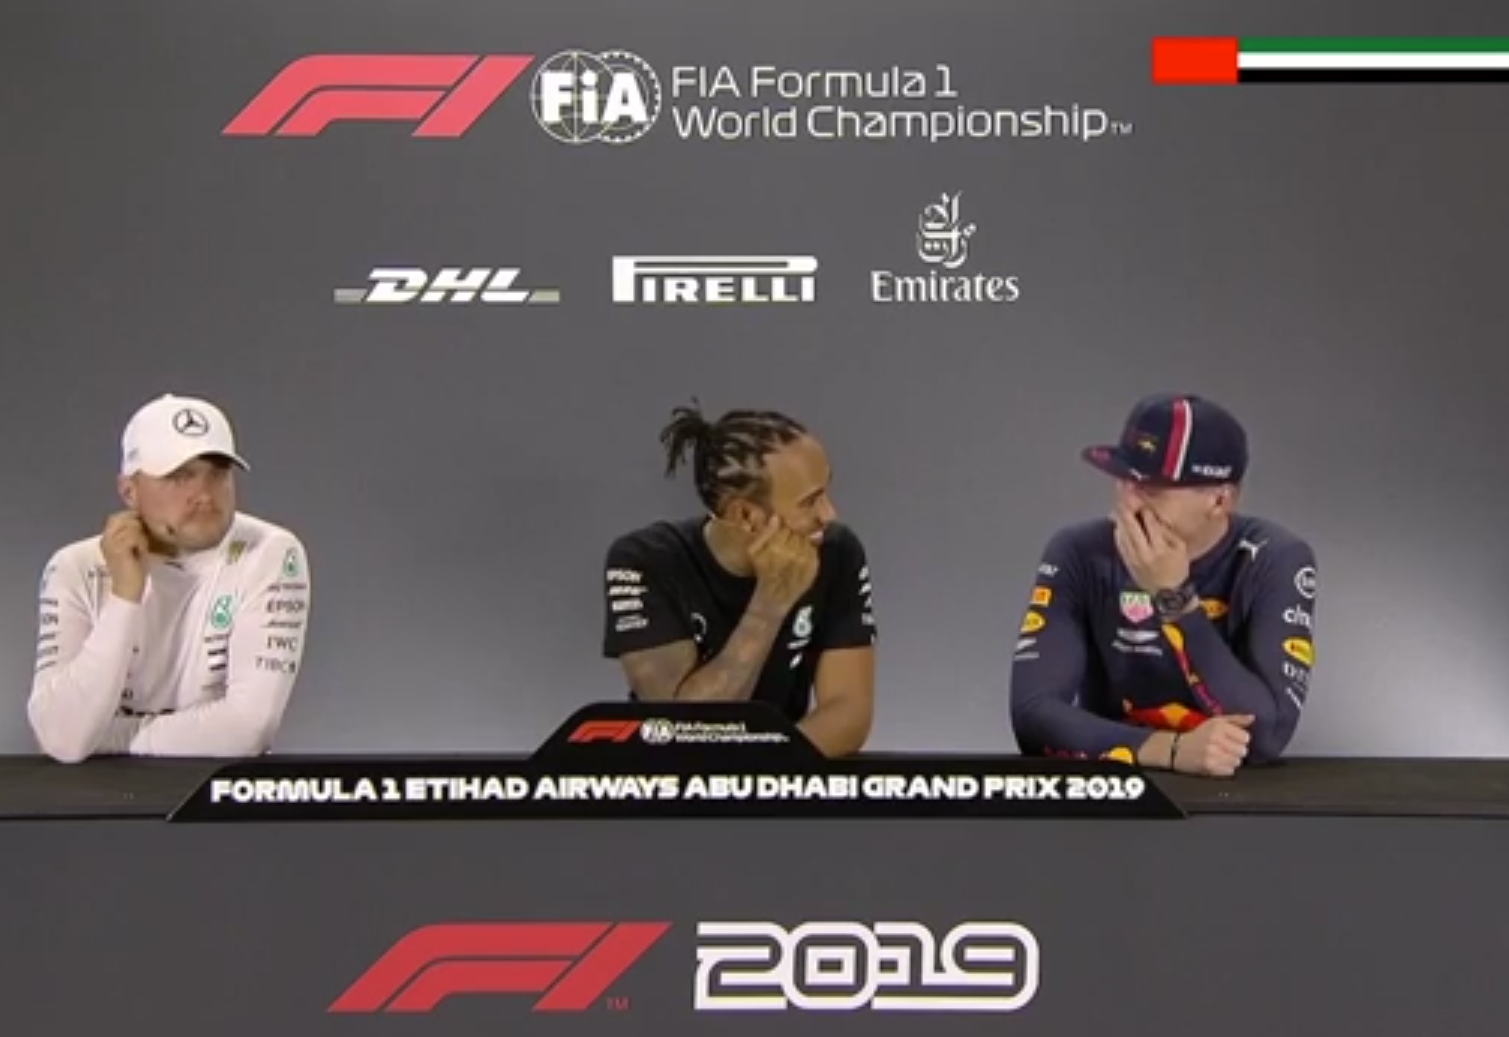 Lewis Hamilton And Max Verstappen Having Fun About Girls In Abu Dhabi